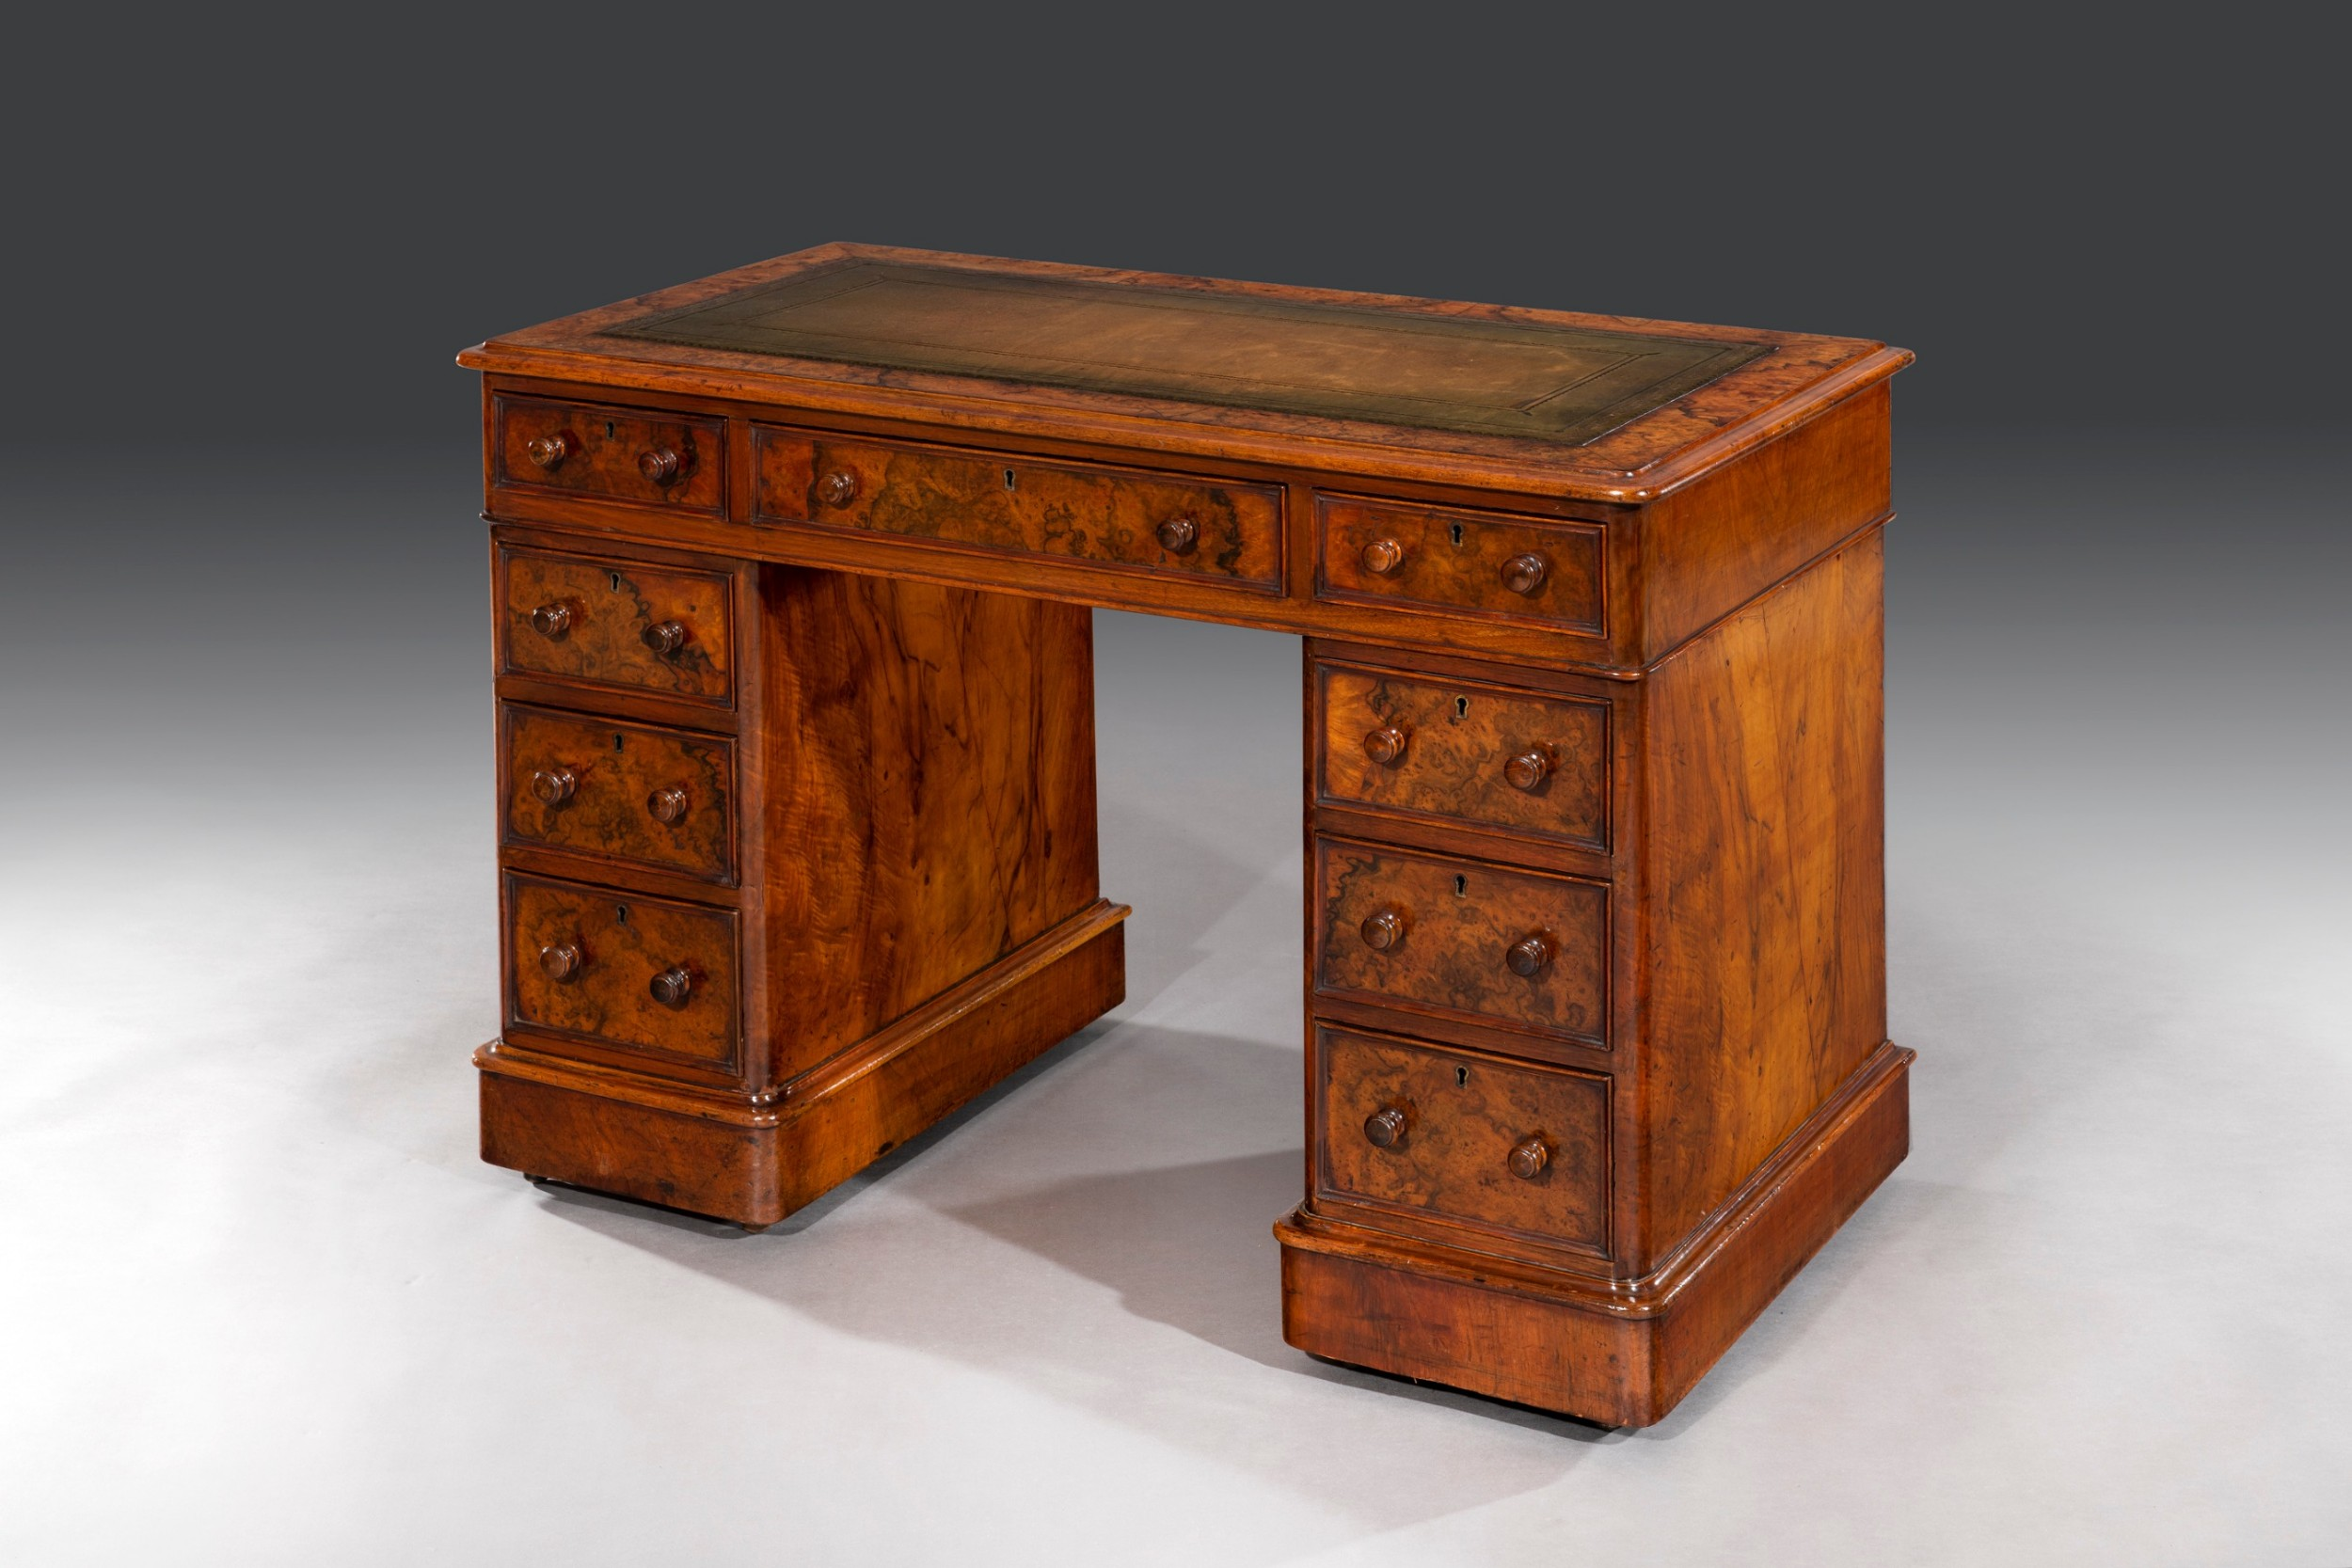 19th century walnut desk